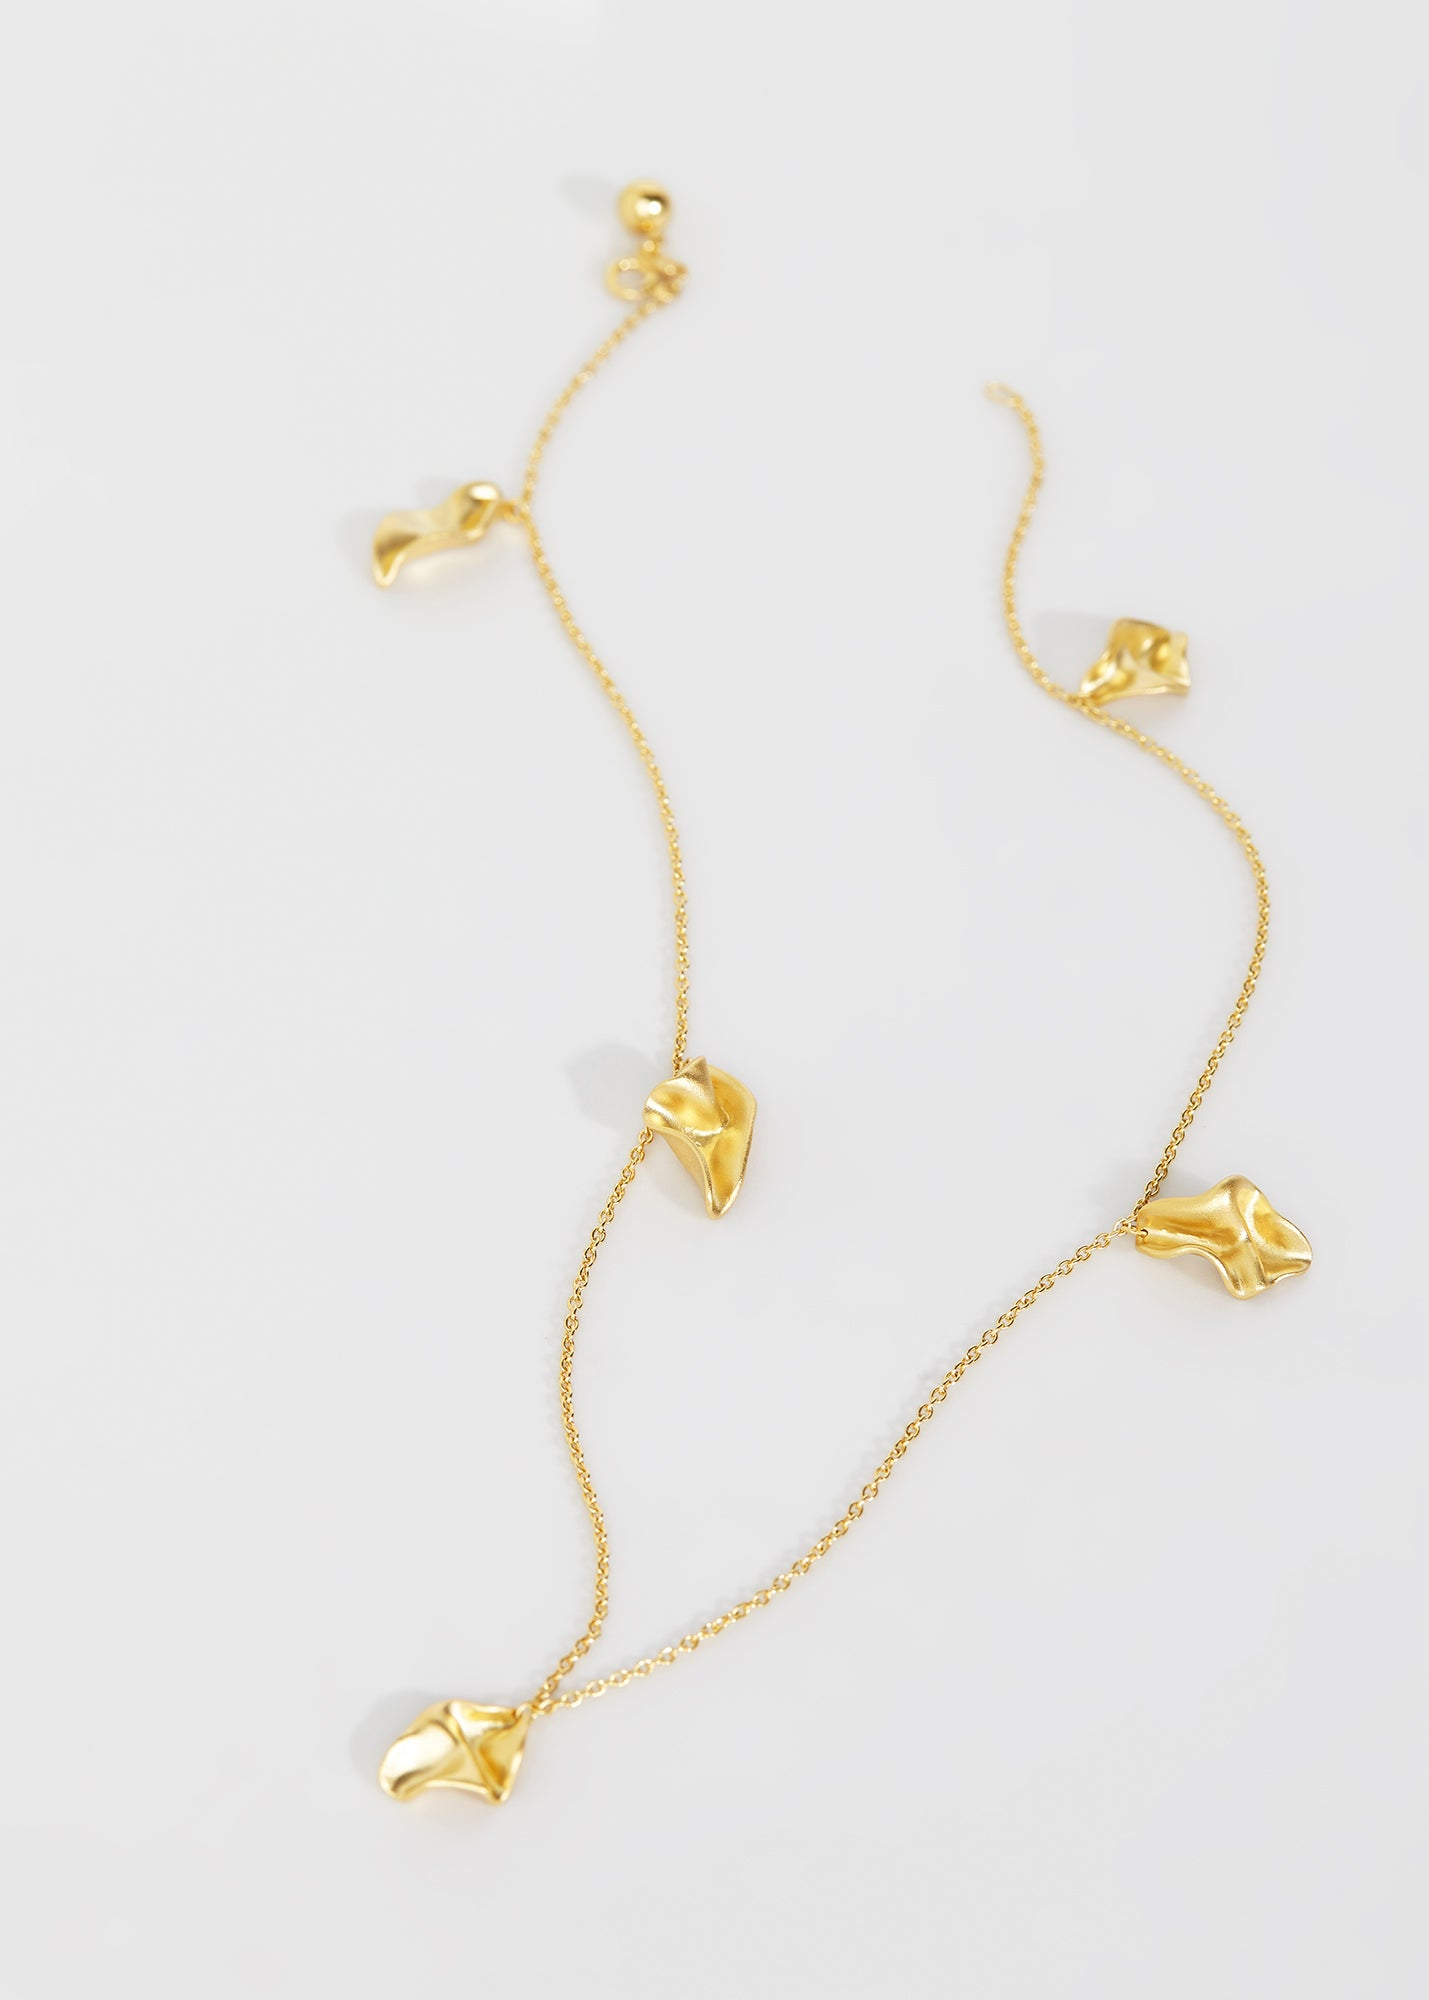 Scarlett Necklace - Trine Tuxen Jewelry